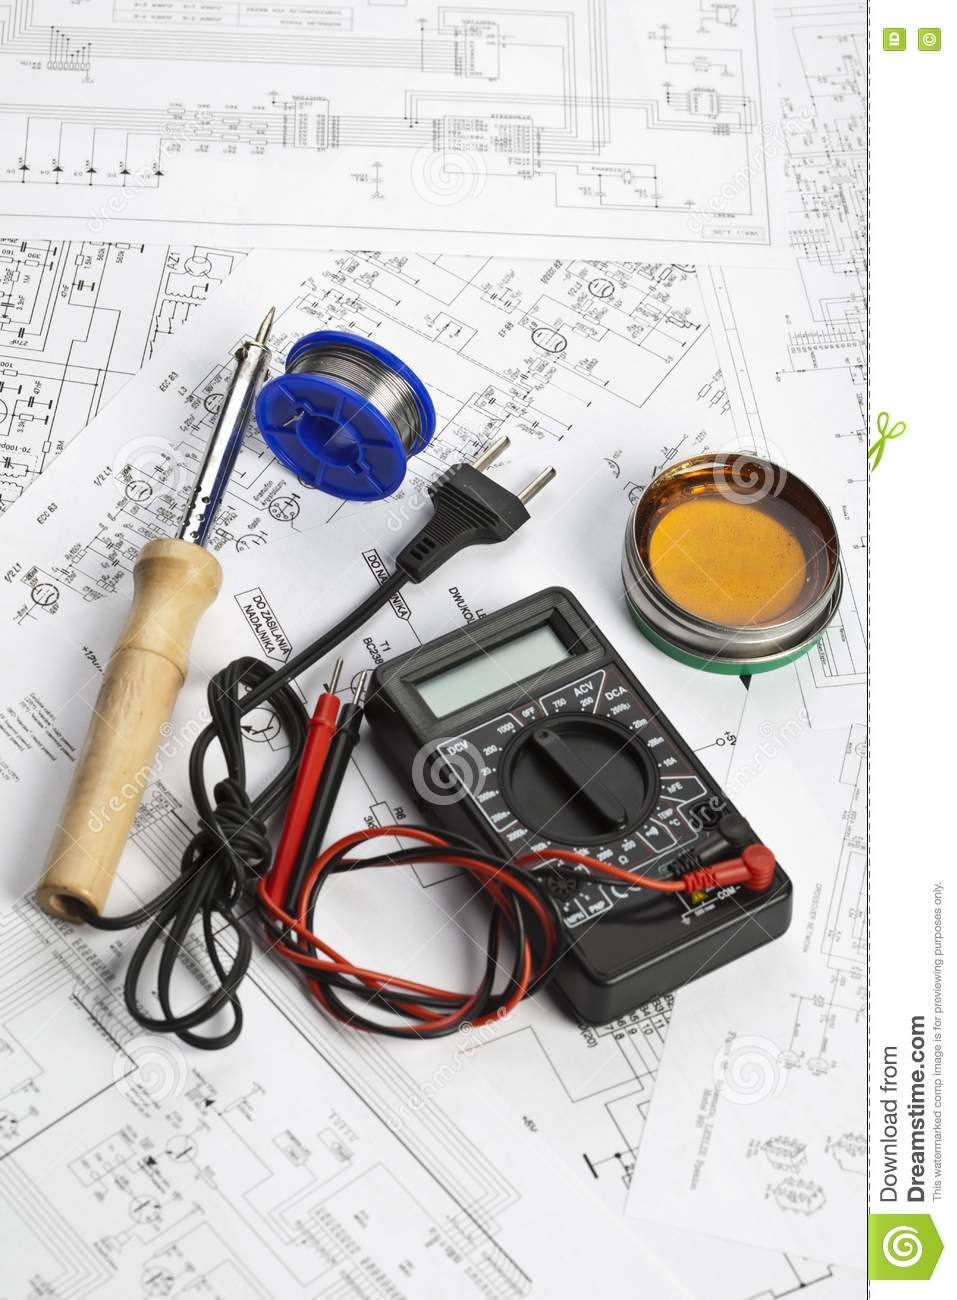 Schematic Diagram Stock Image  Image Of Component  Cable